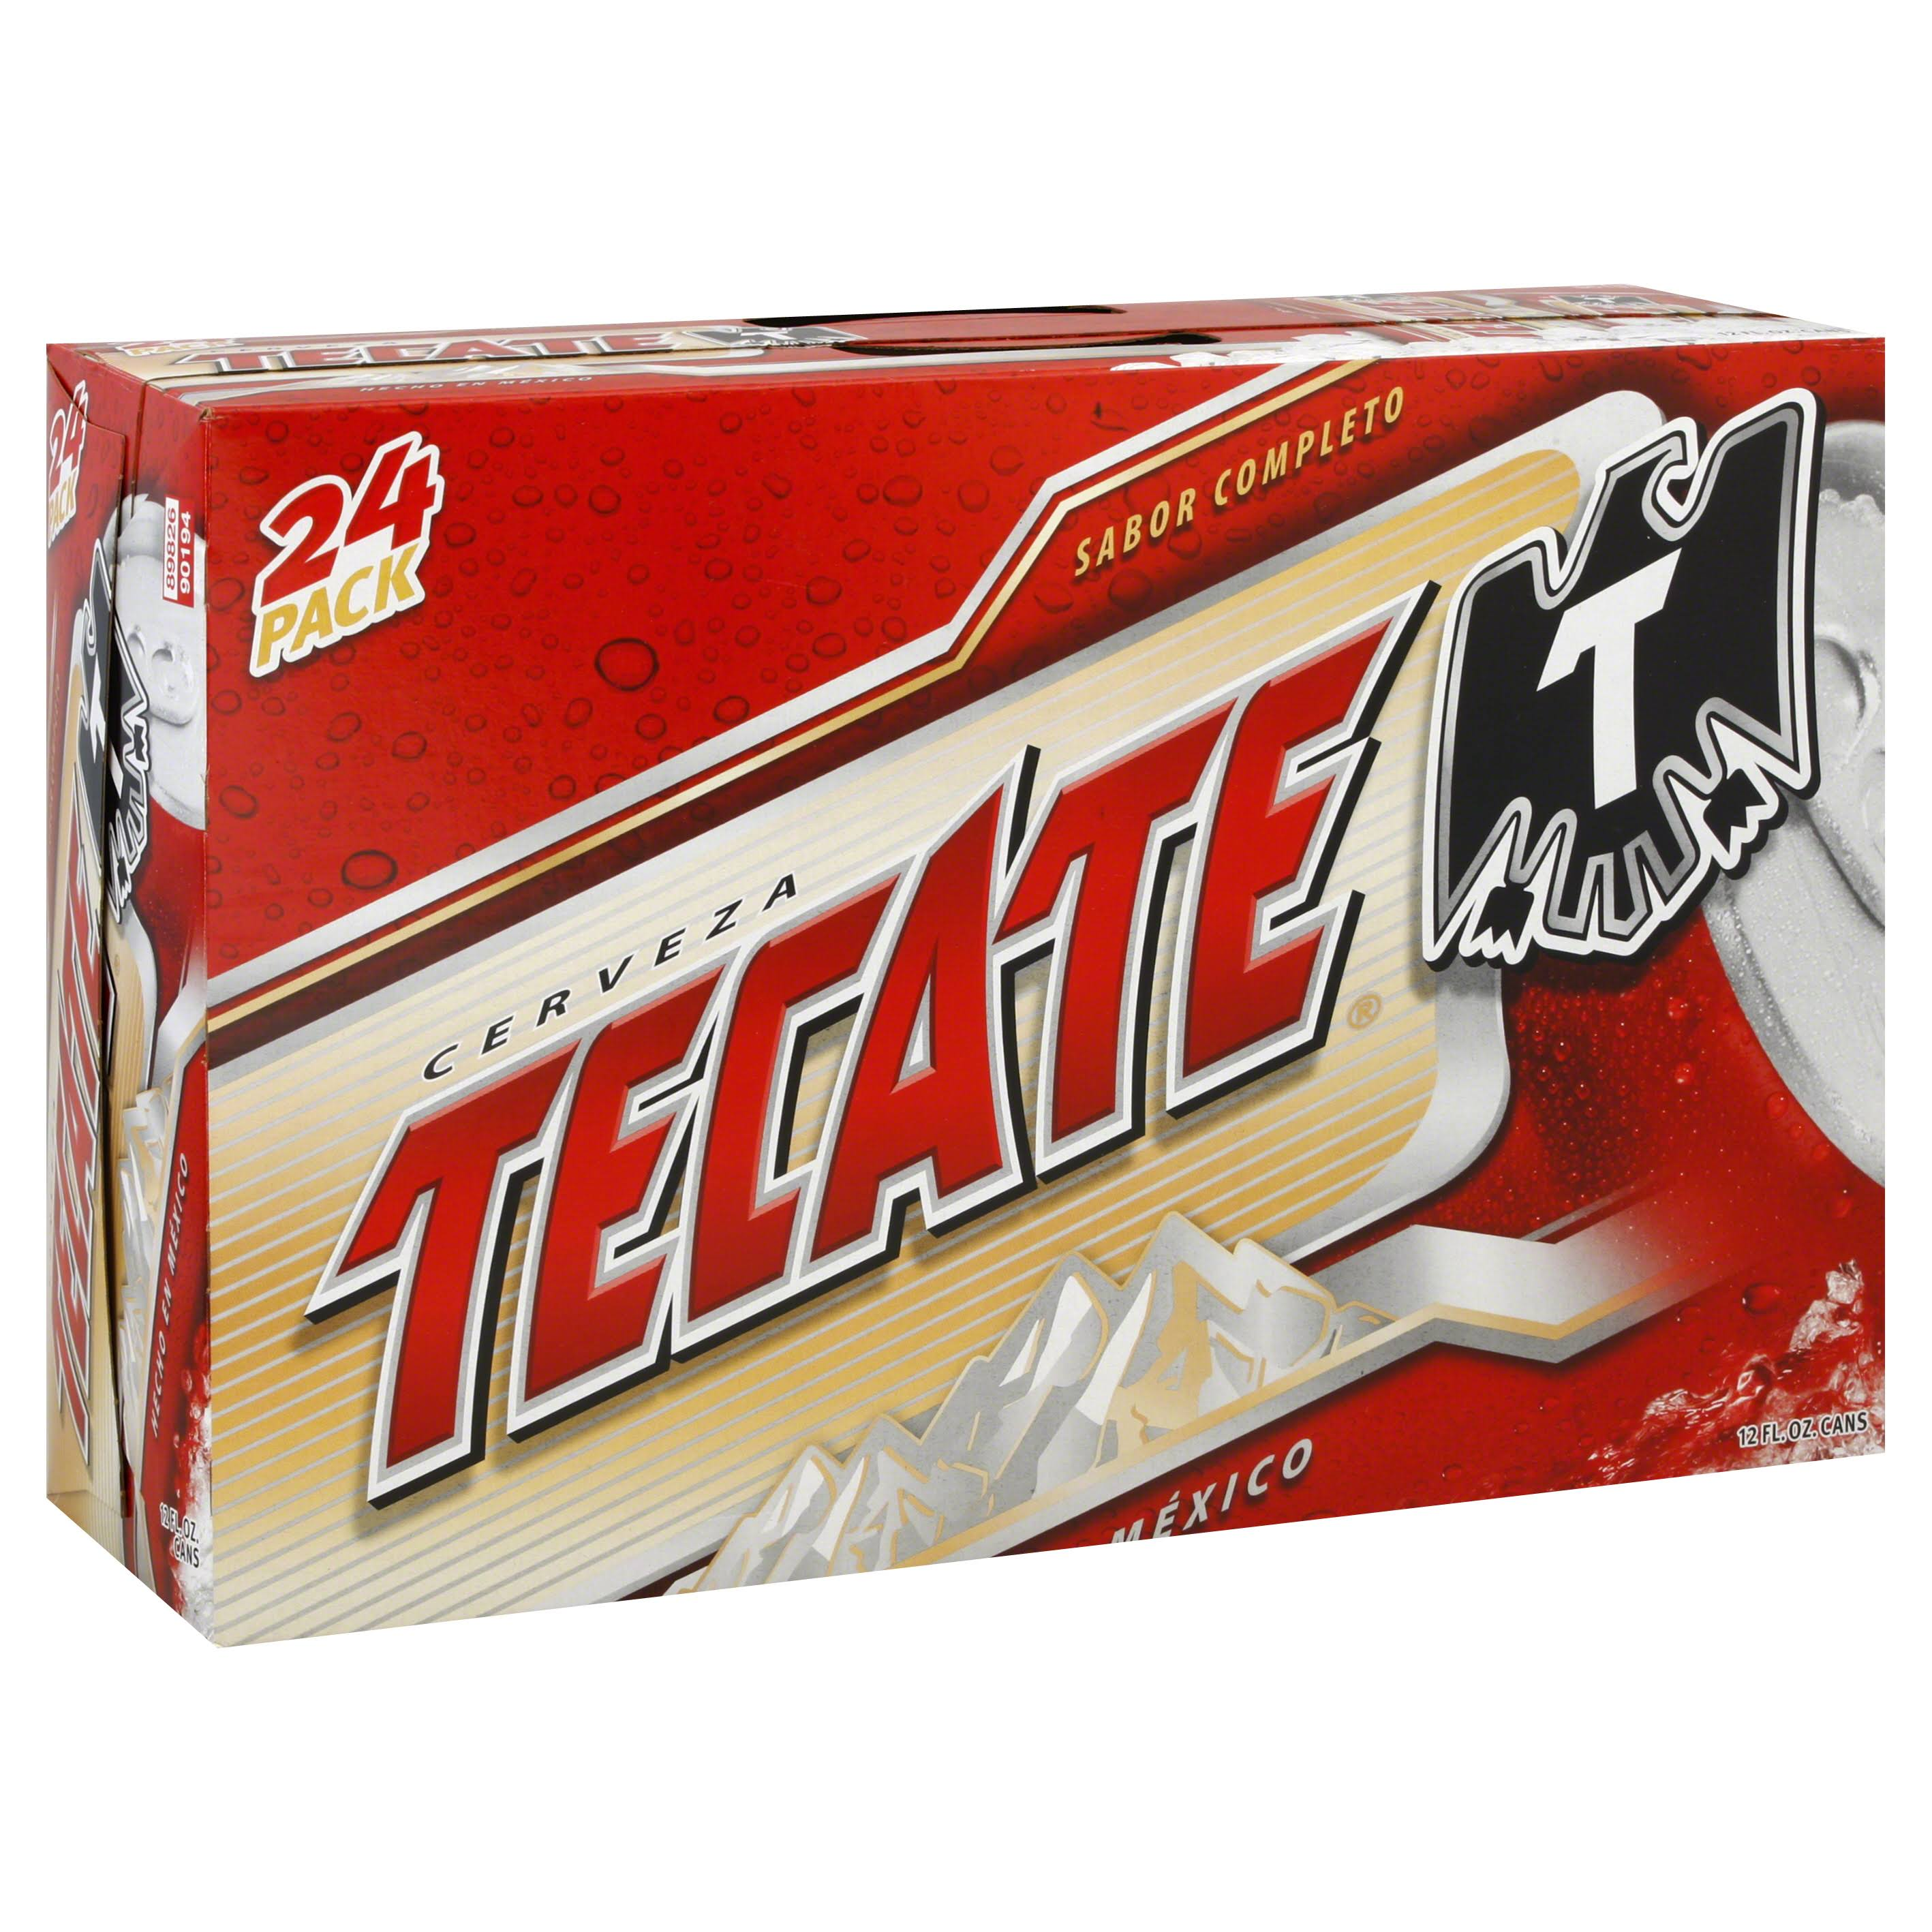 Tecate Mexican Beer - 24ct